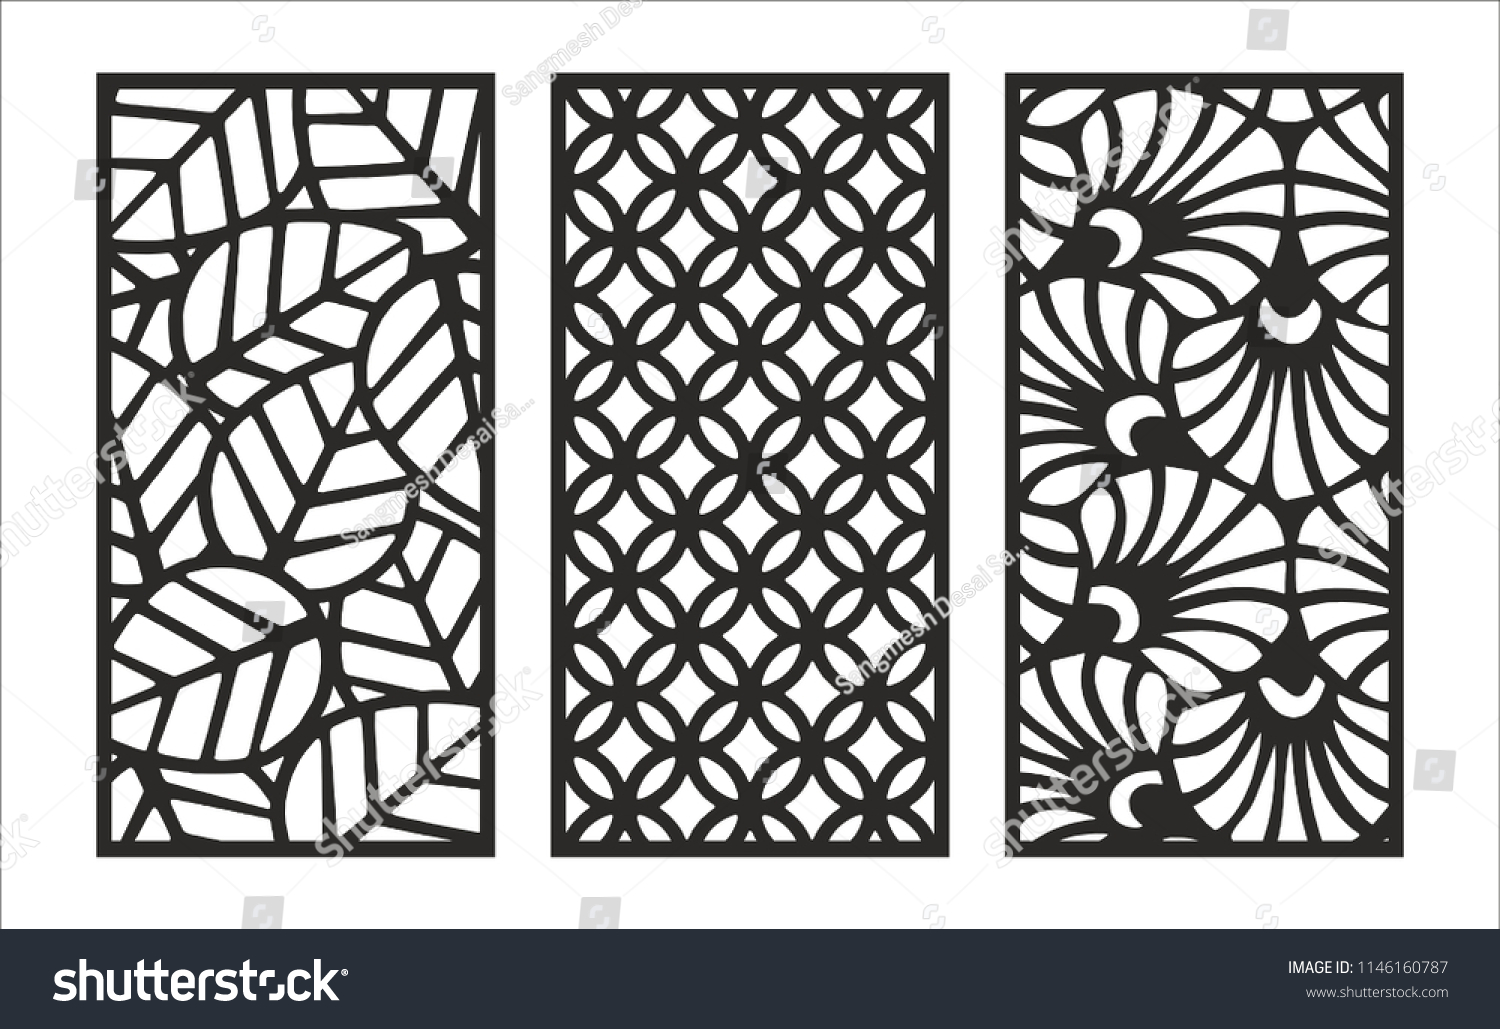 Jali Design Graphic Plywood Partition Foam Stock Vector